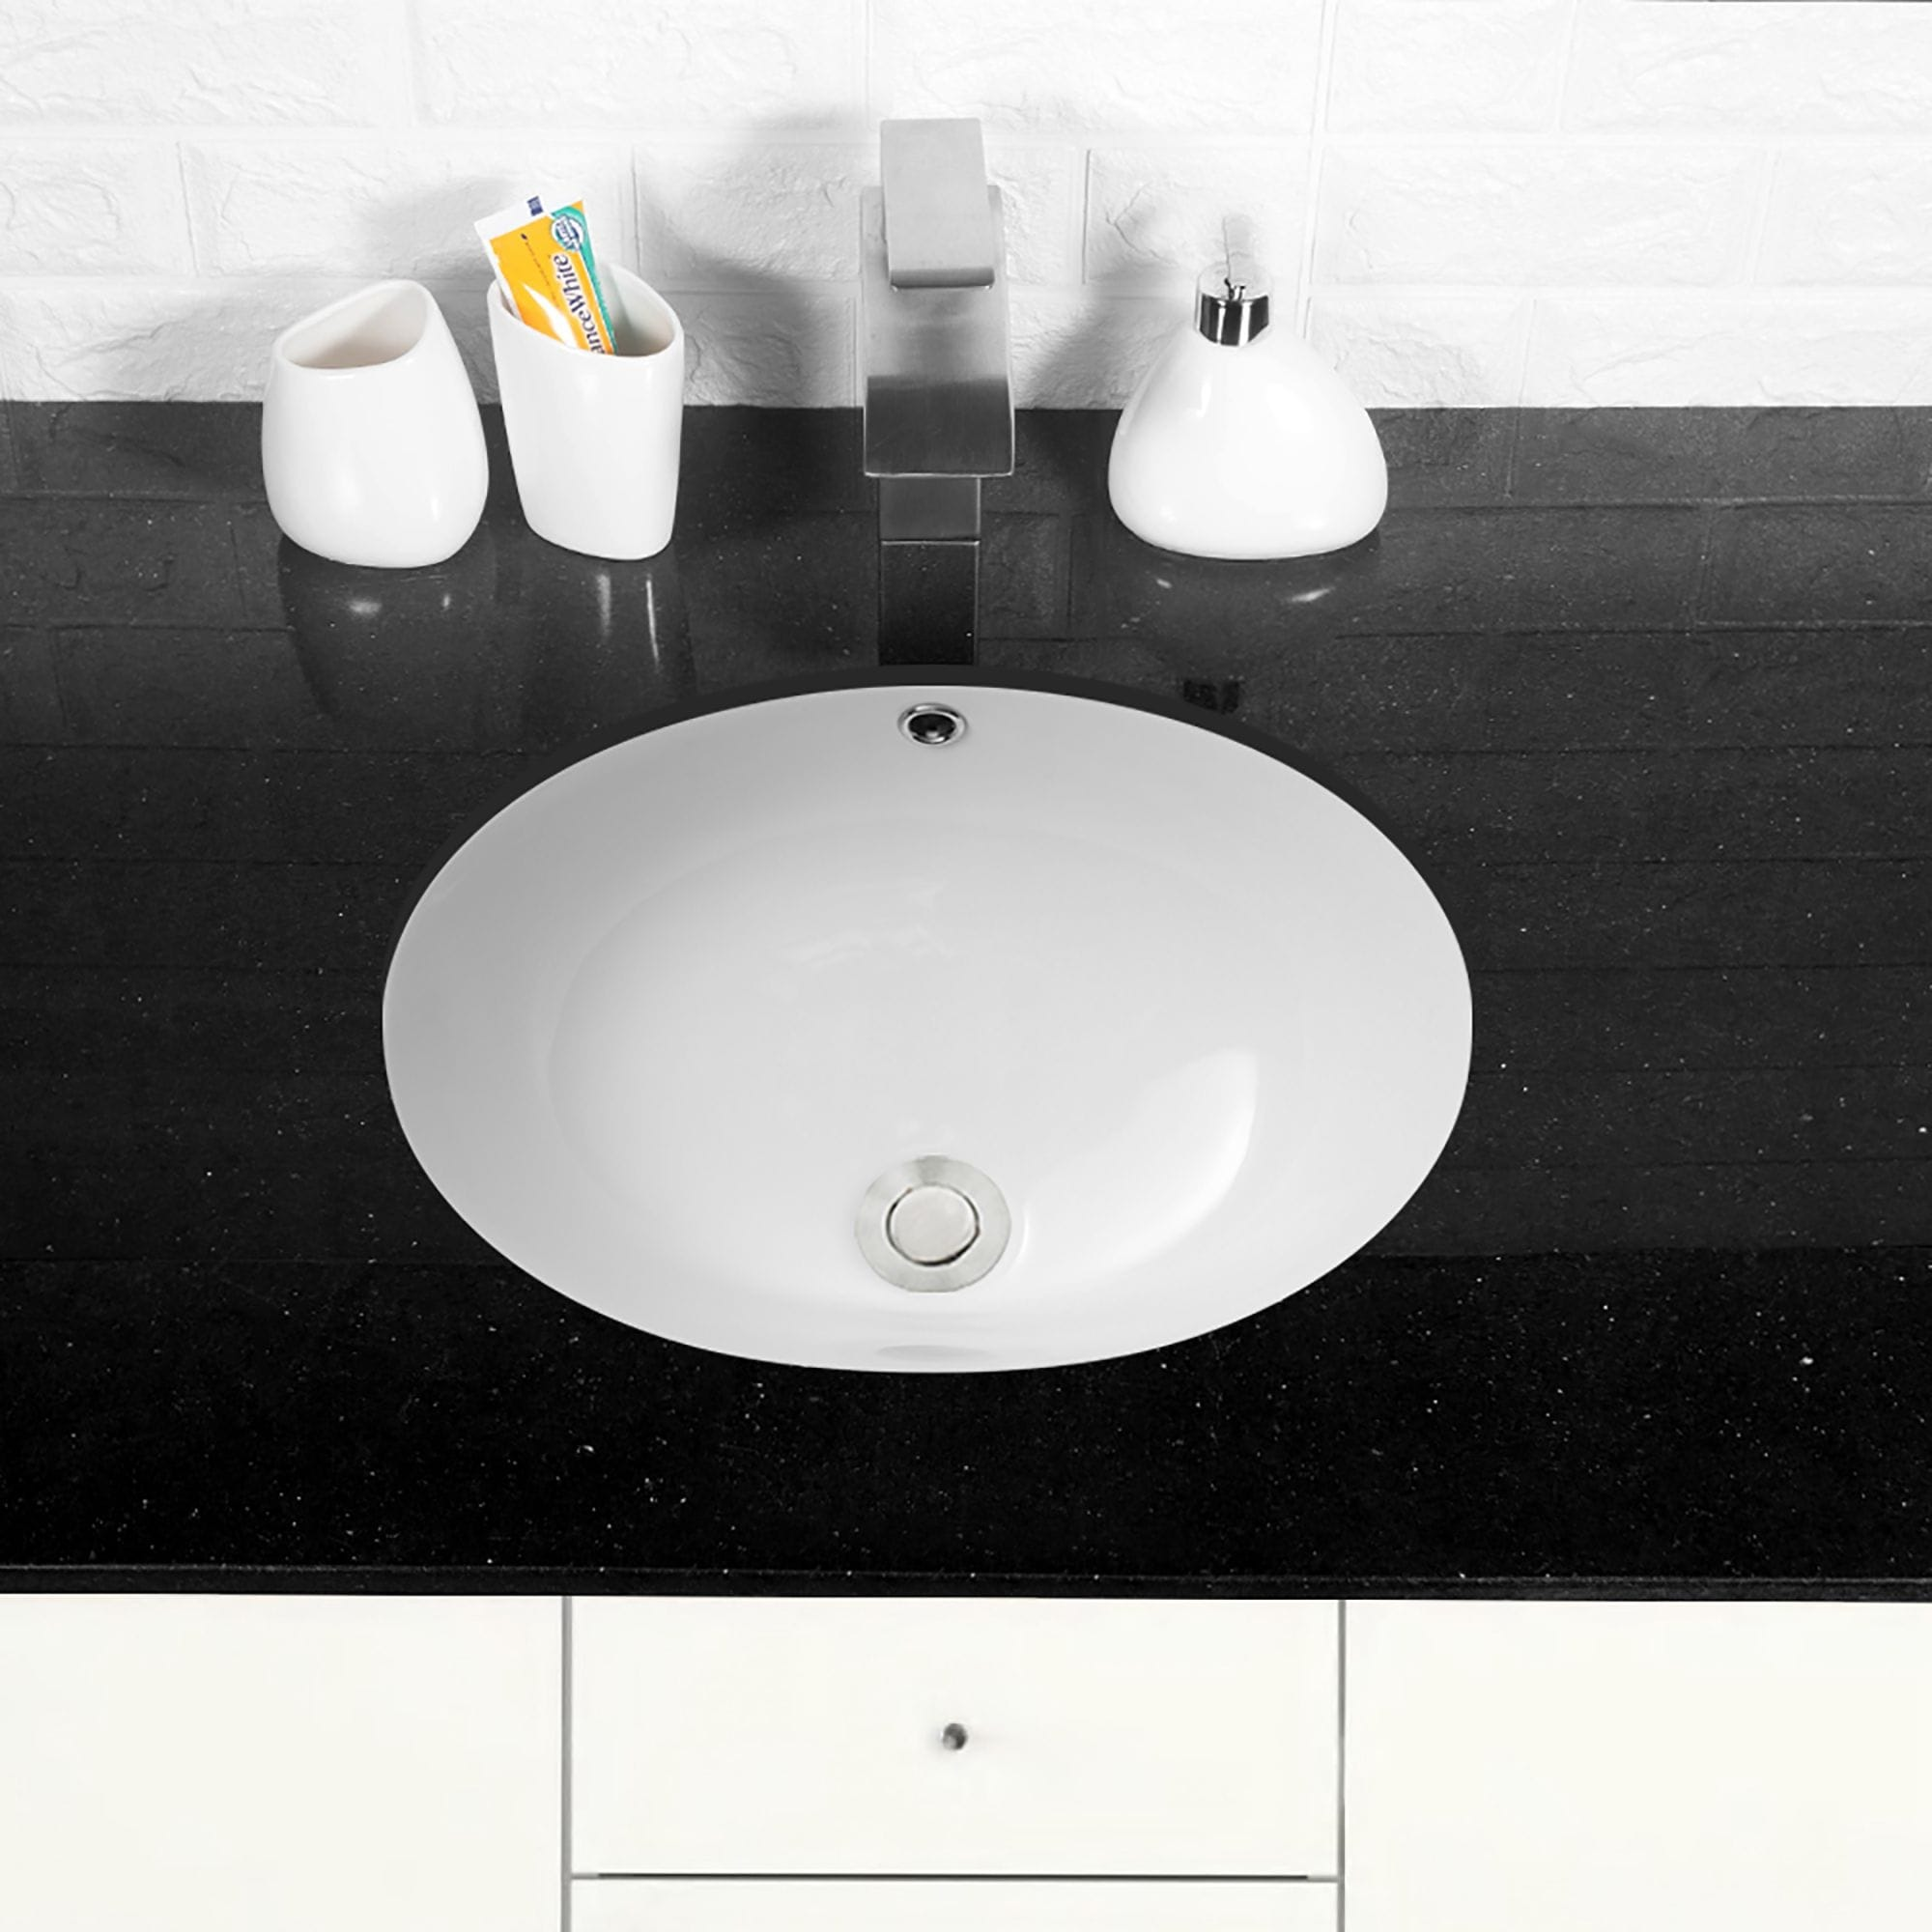 Round Undermount Bathroom Sink With Overflow Overstock 31420596